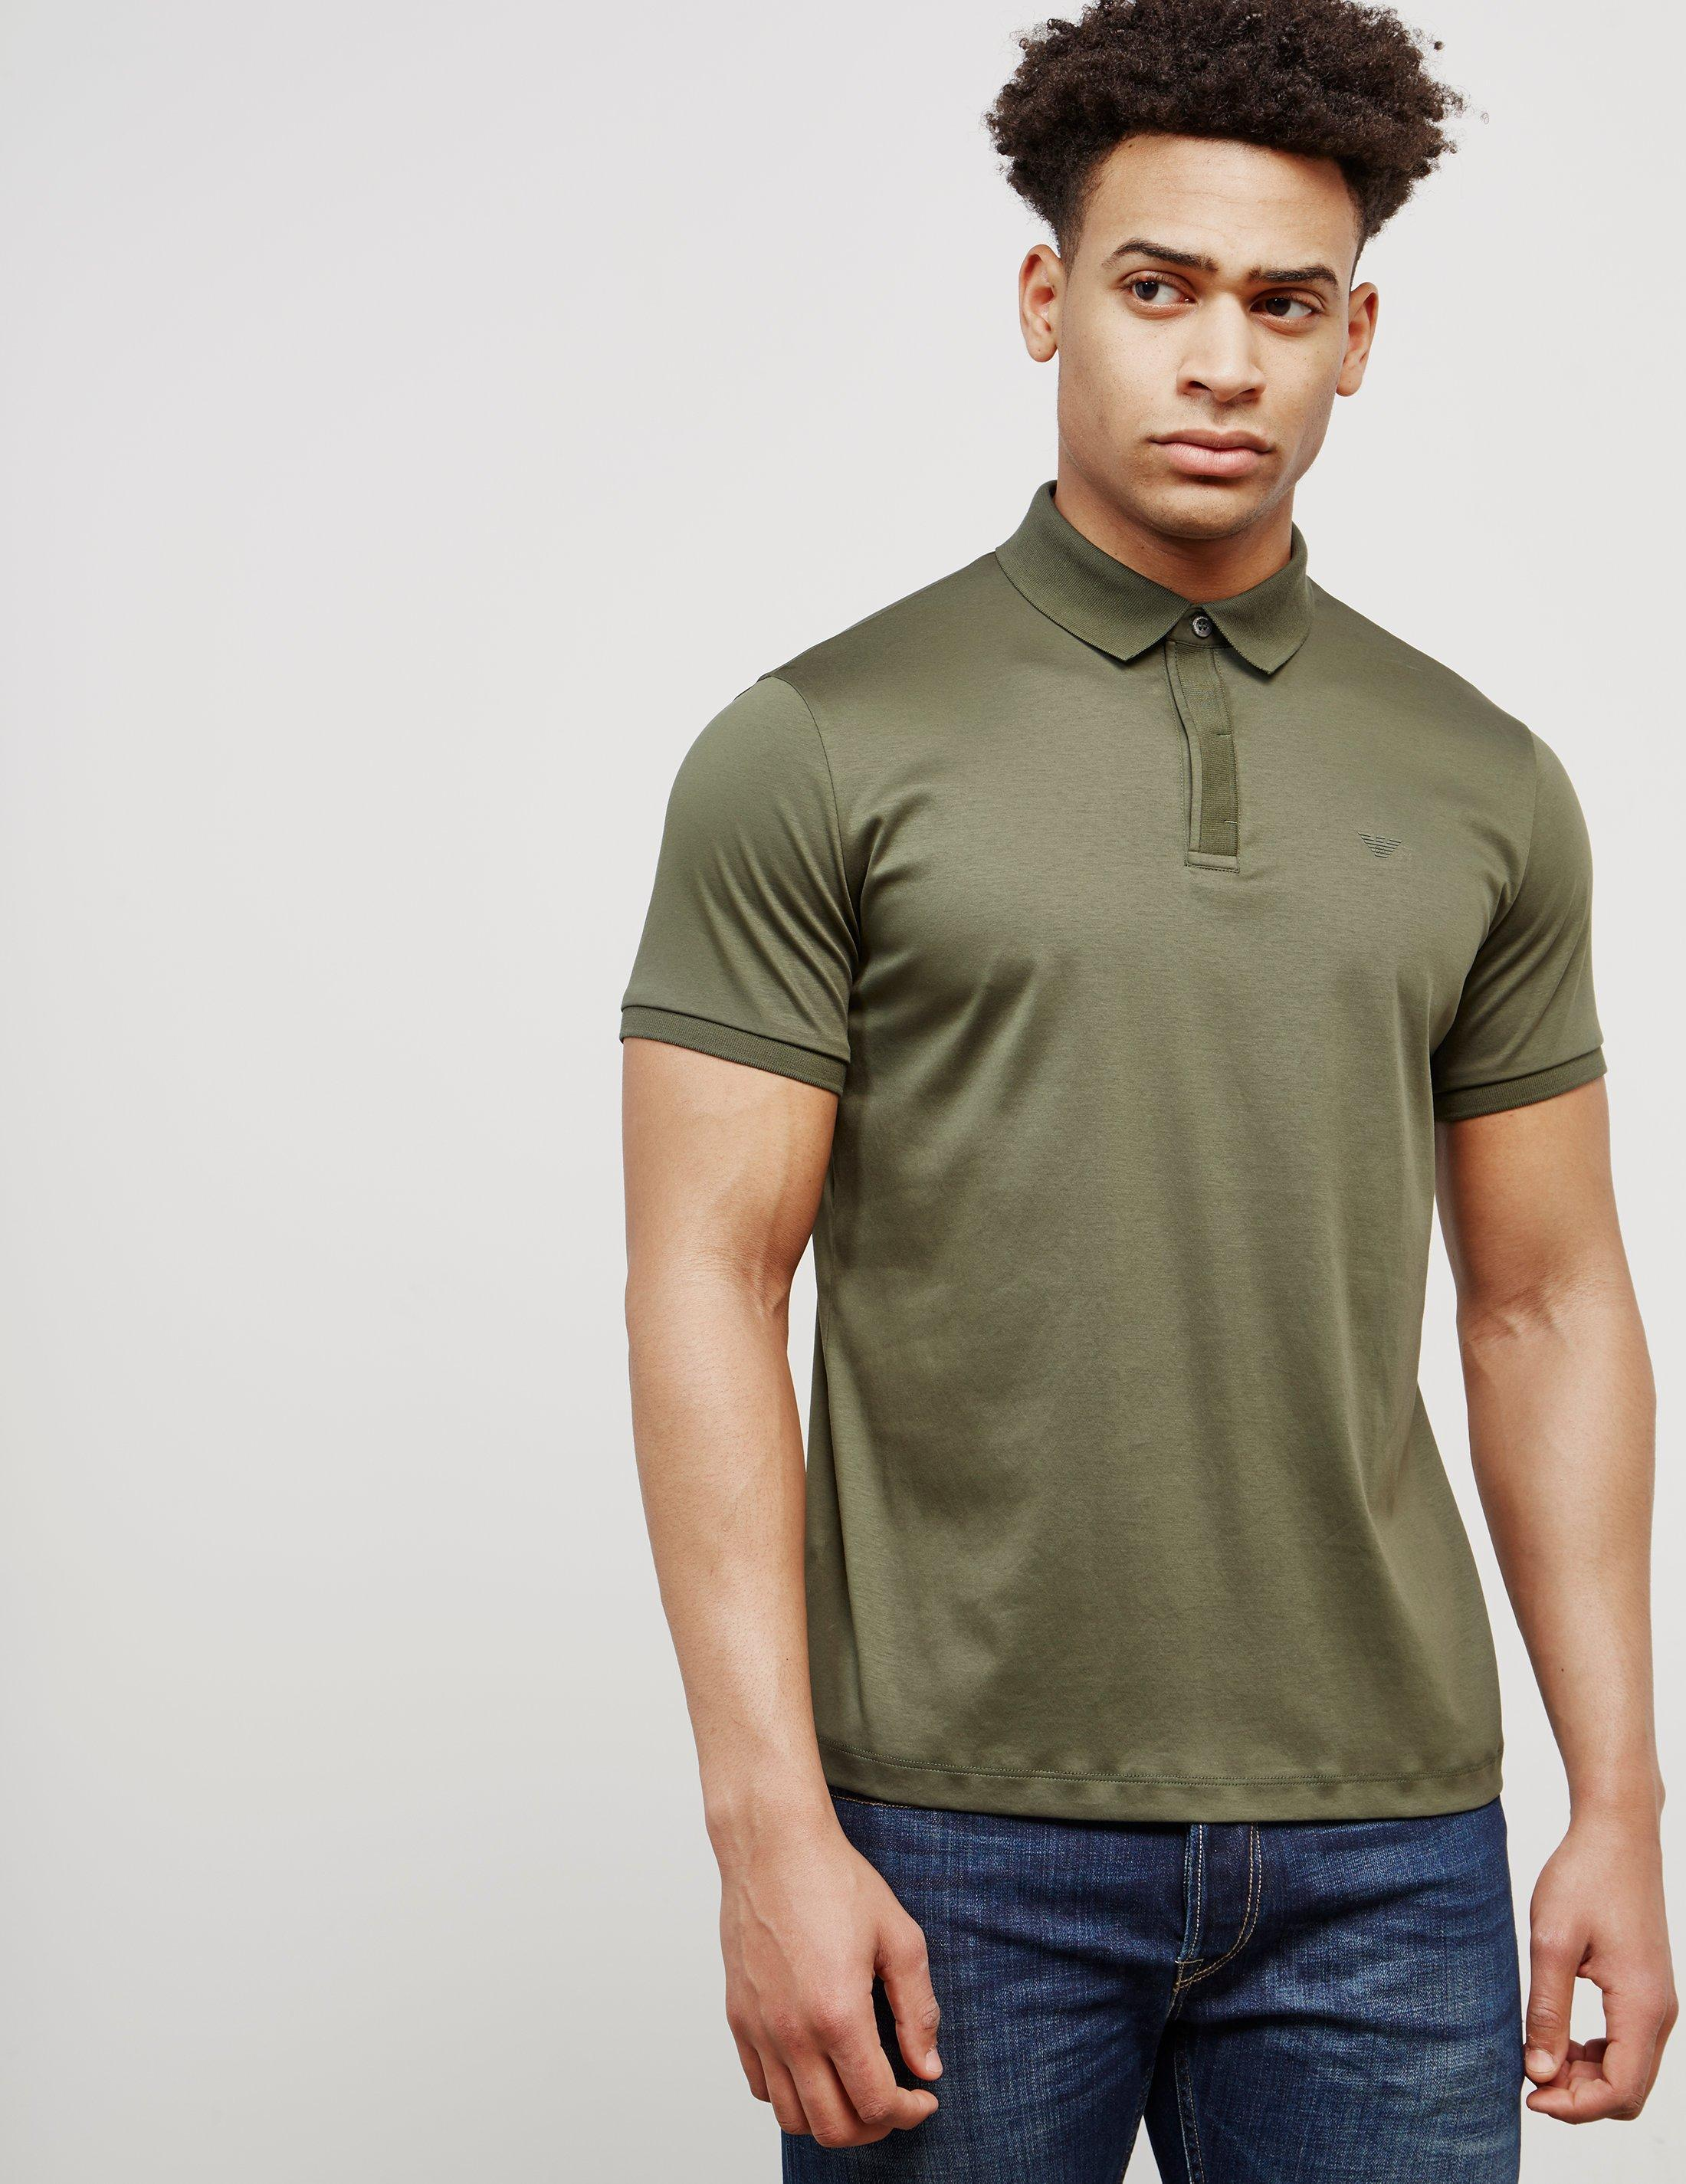 Branded Polo T Shirts Online